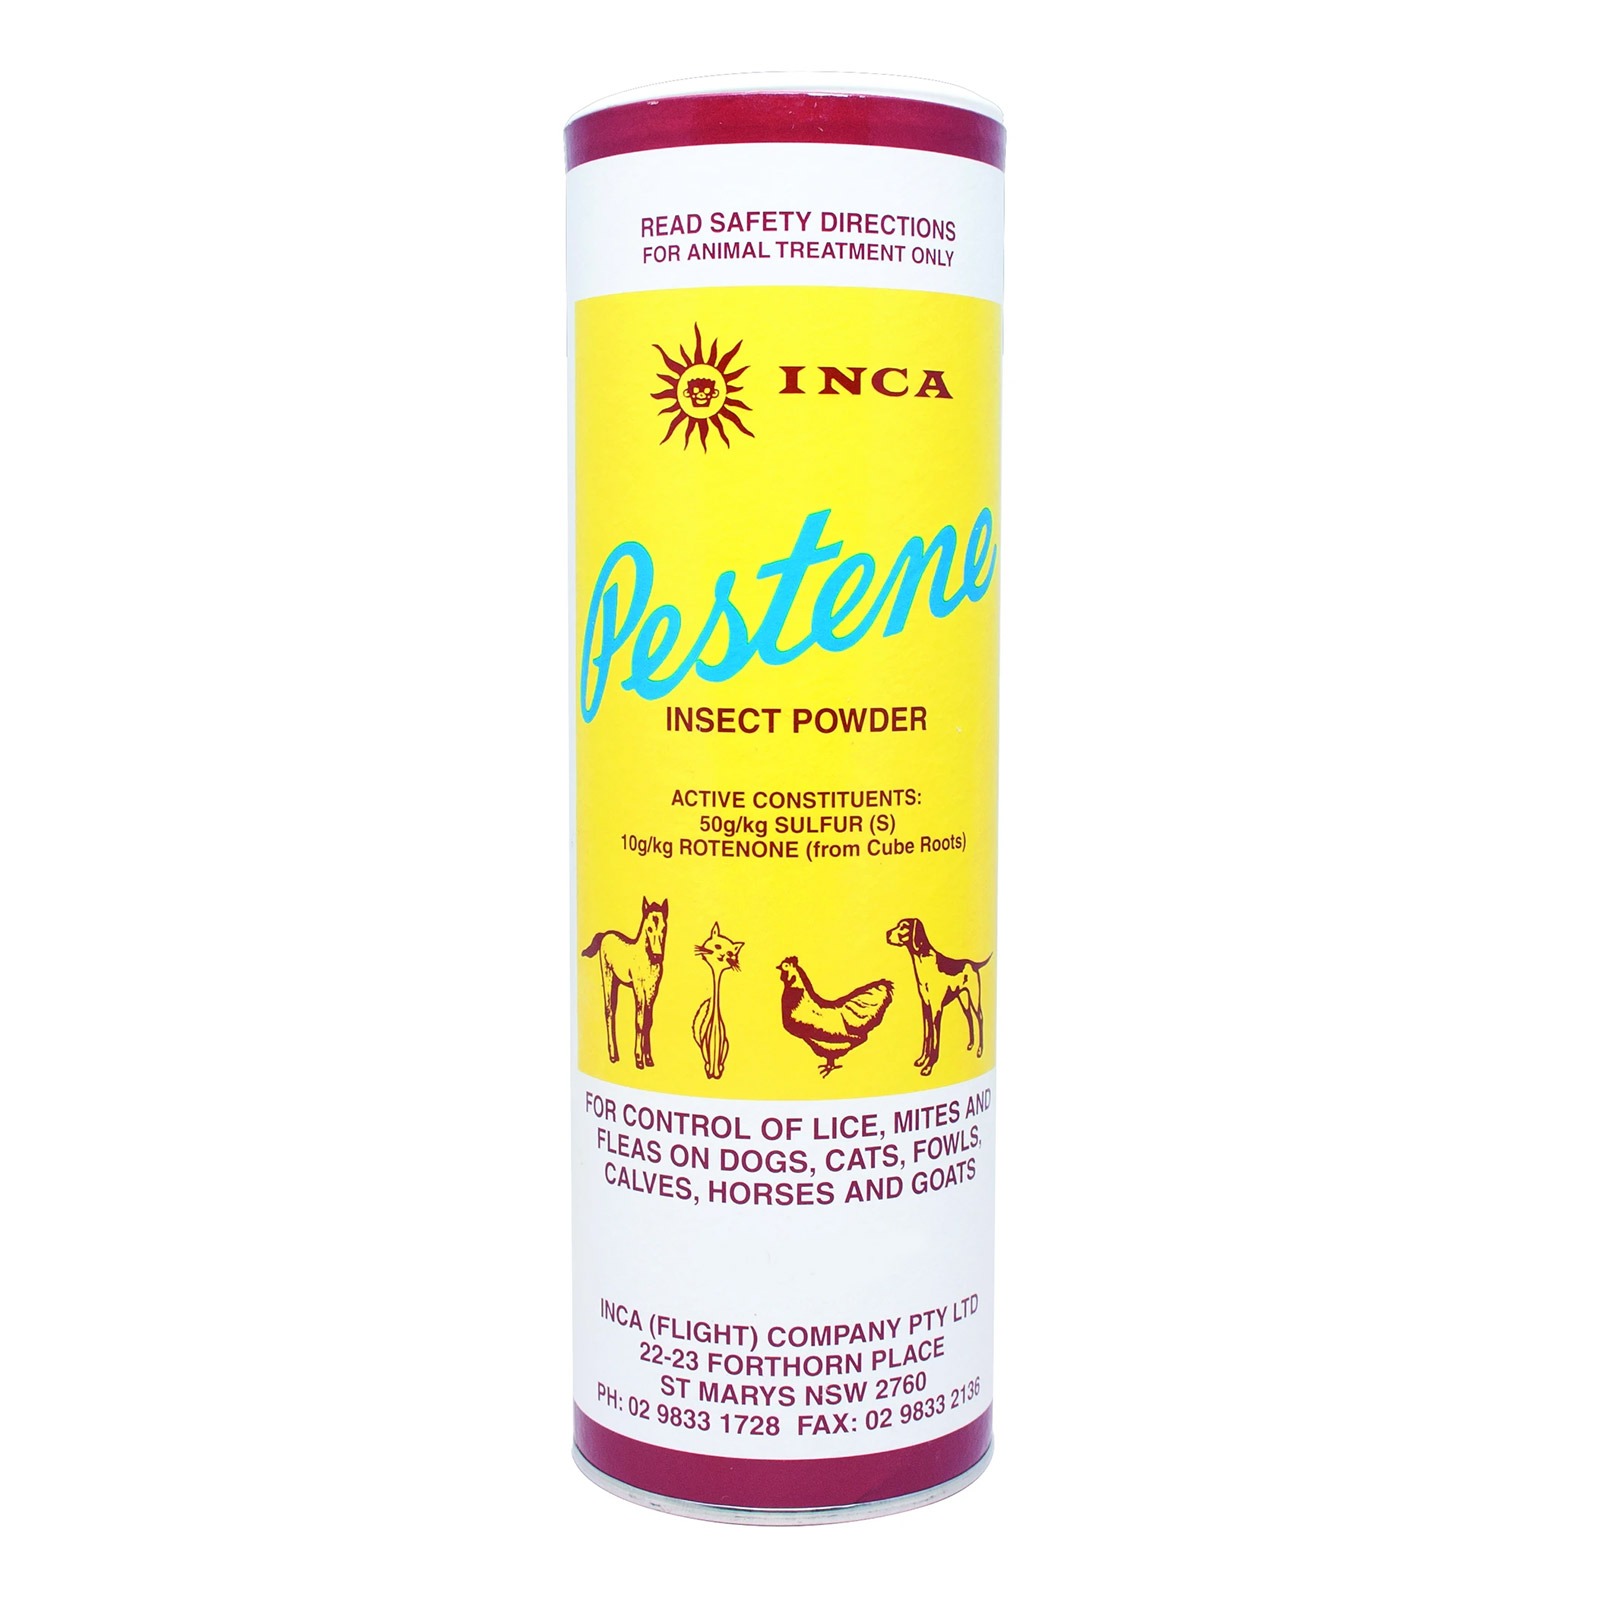 Inca Pestene Insect Powder for Fowls, Dogs, Cats, Horses and Goats